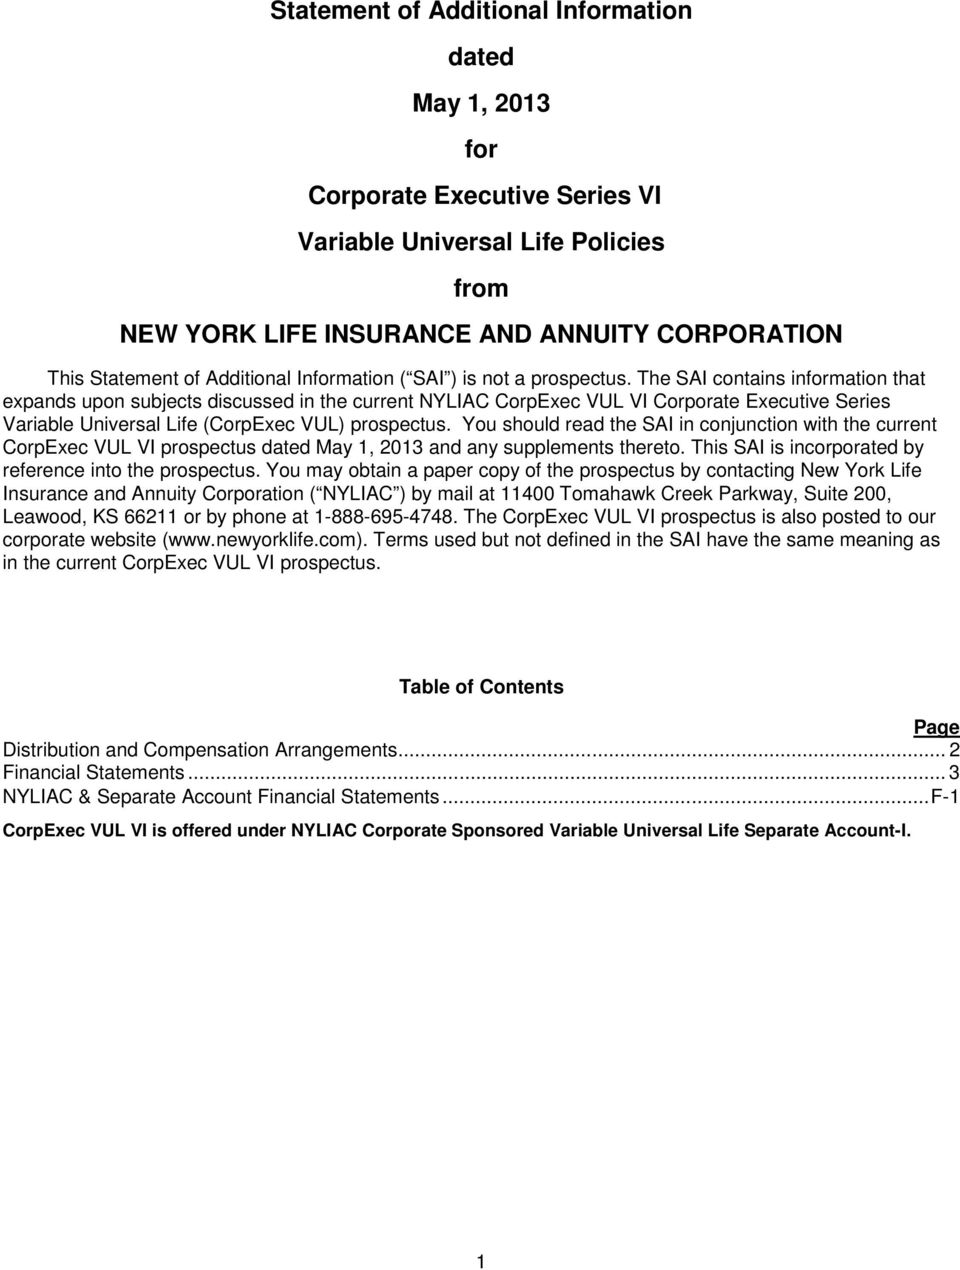 The SAI contains information that expands upon subjects discussed in the current NYLIAC CorpExec VUL VI Corporate Executive Series Variable Universal Life (CorpExec VUL) prospectus.